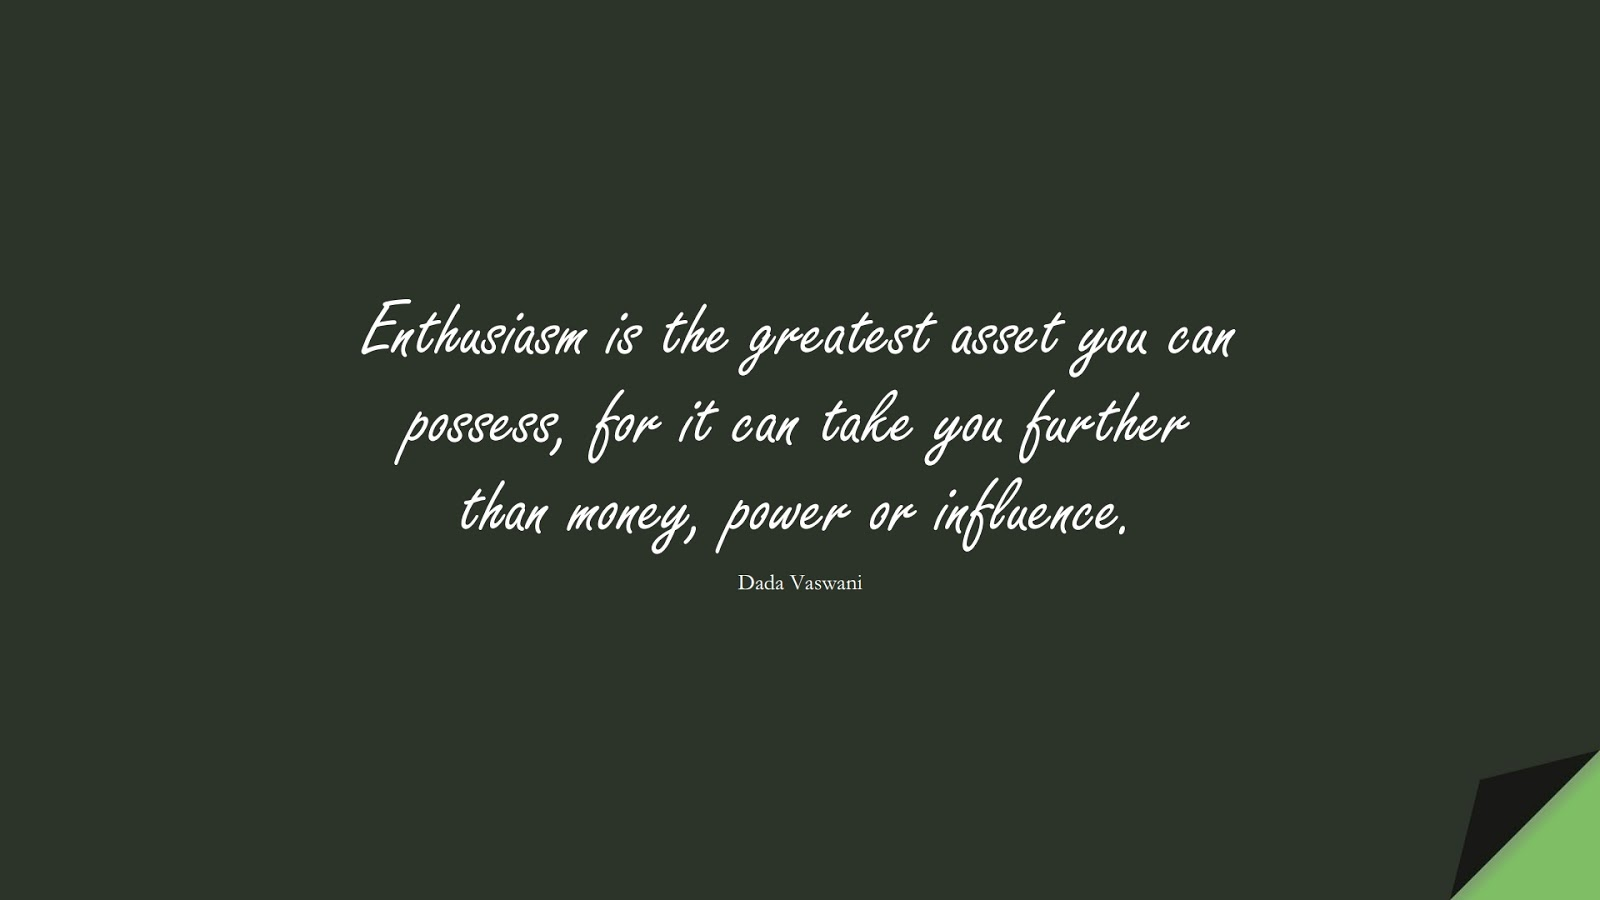 Enthusiasm is the greatest asset you can possess, for it can take you further than money, power or influence. (Dada Vaswani);  #MoneyQuotes